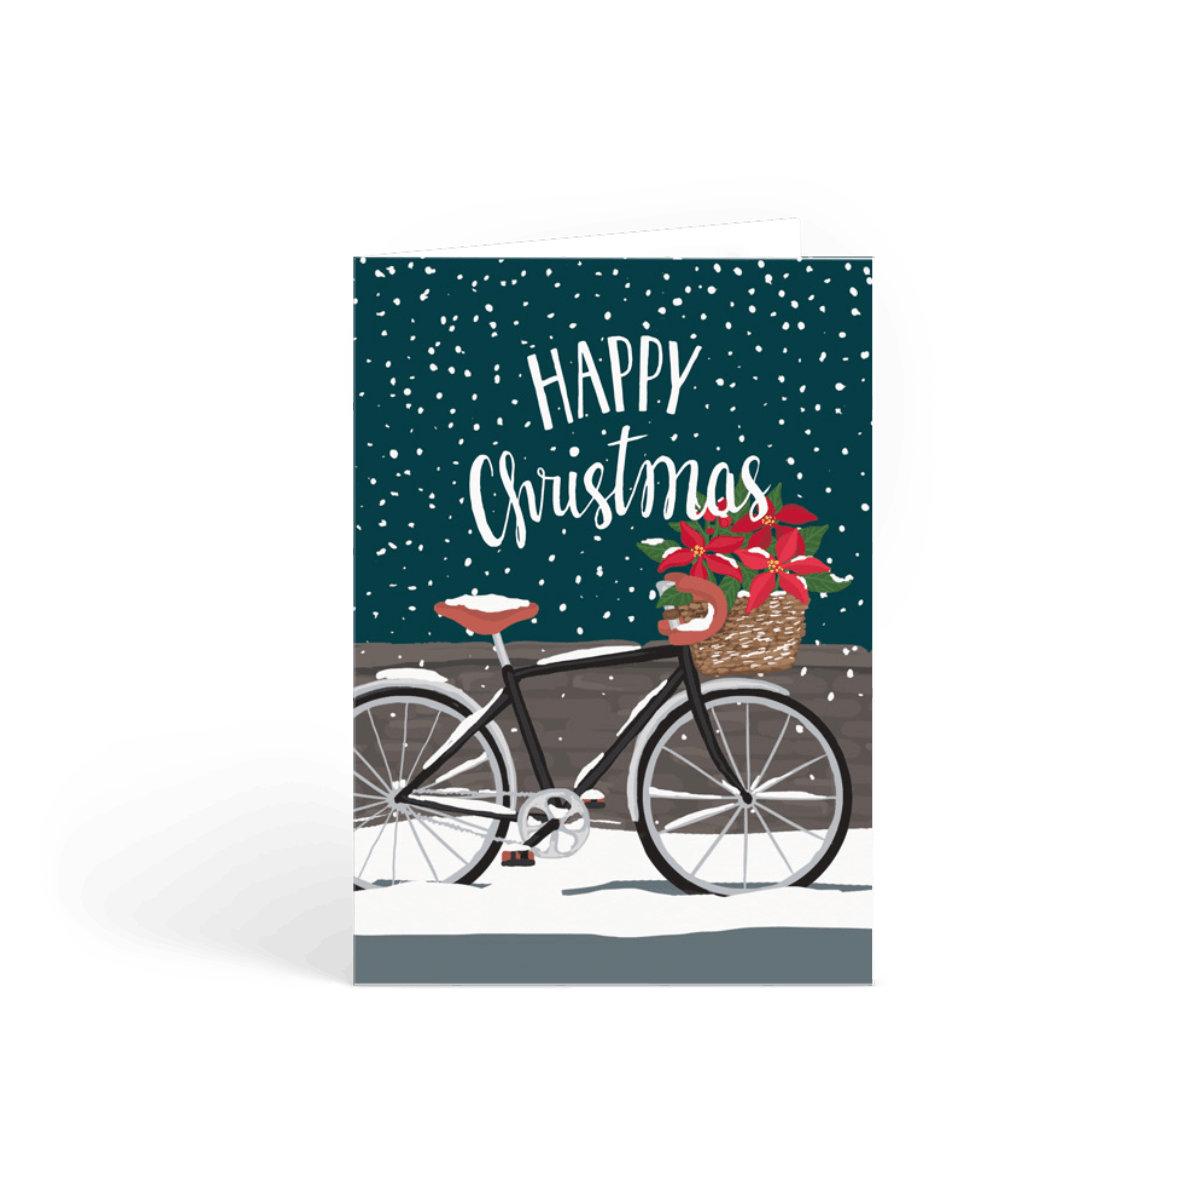 Https%3a%2f%2fwww.papier.com%2fproduct image%2f3525%2f2%2fchristmas bicycle 942 front 1541424127.png?ixlib=rb 1.1